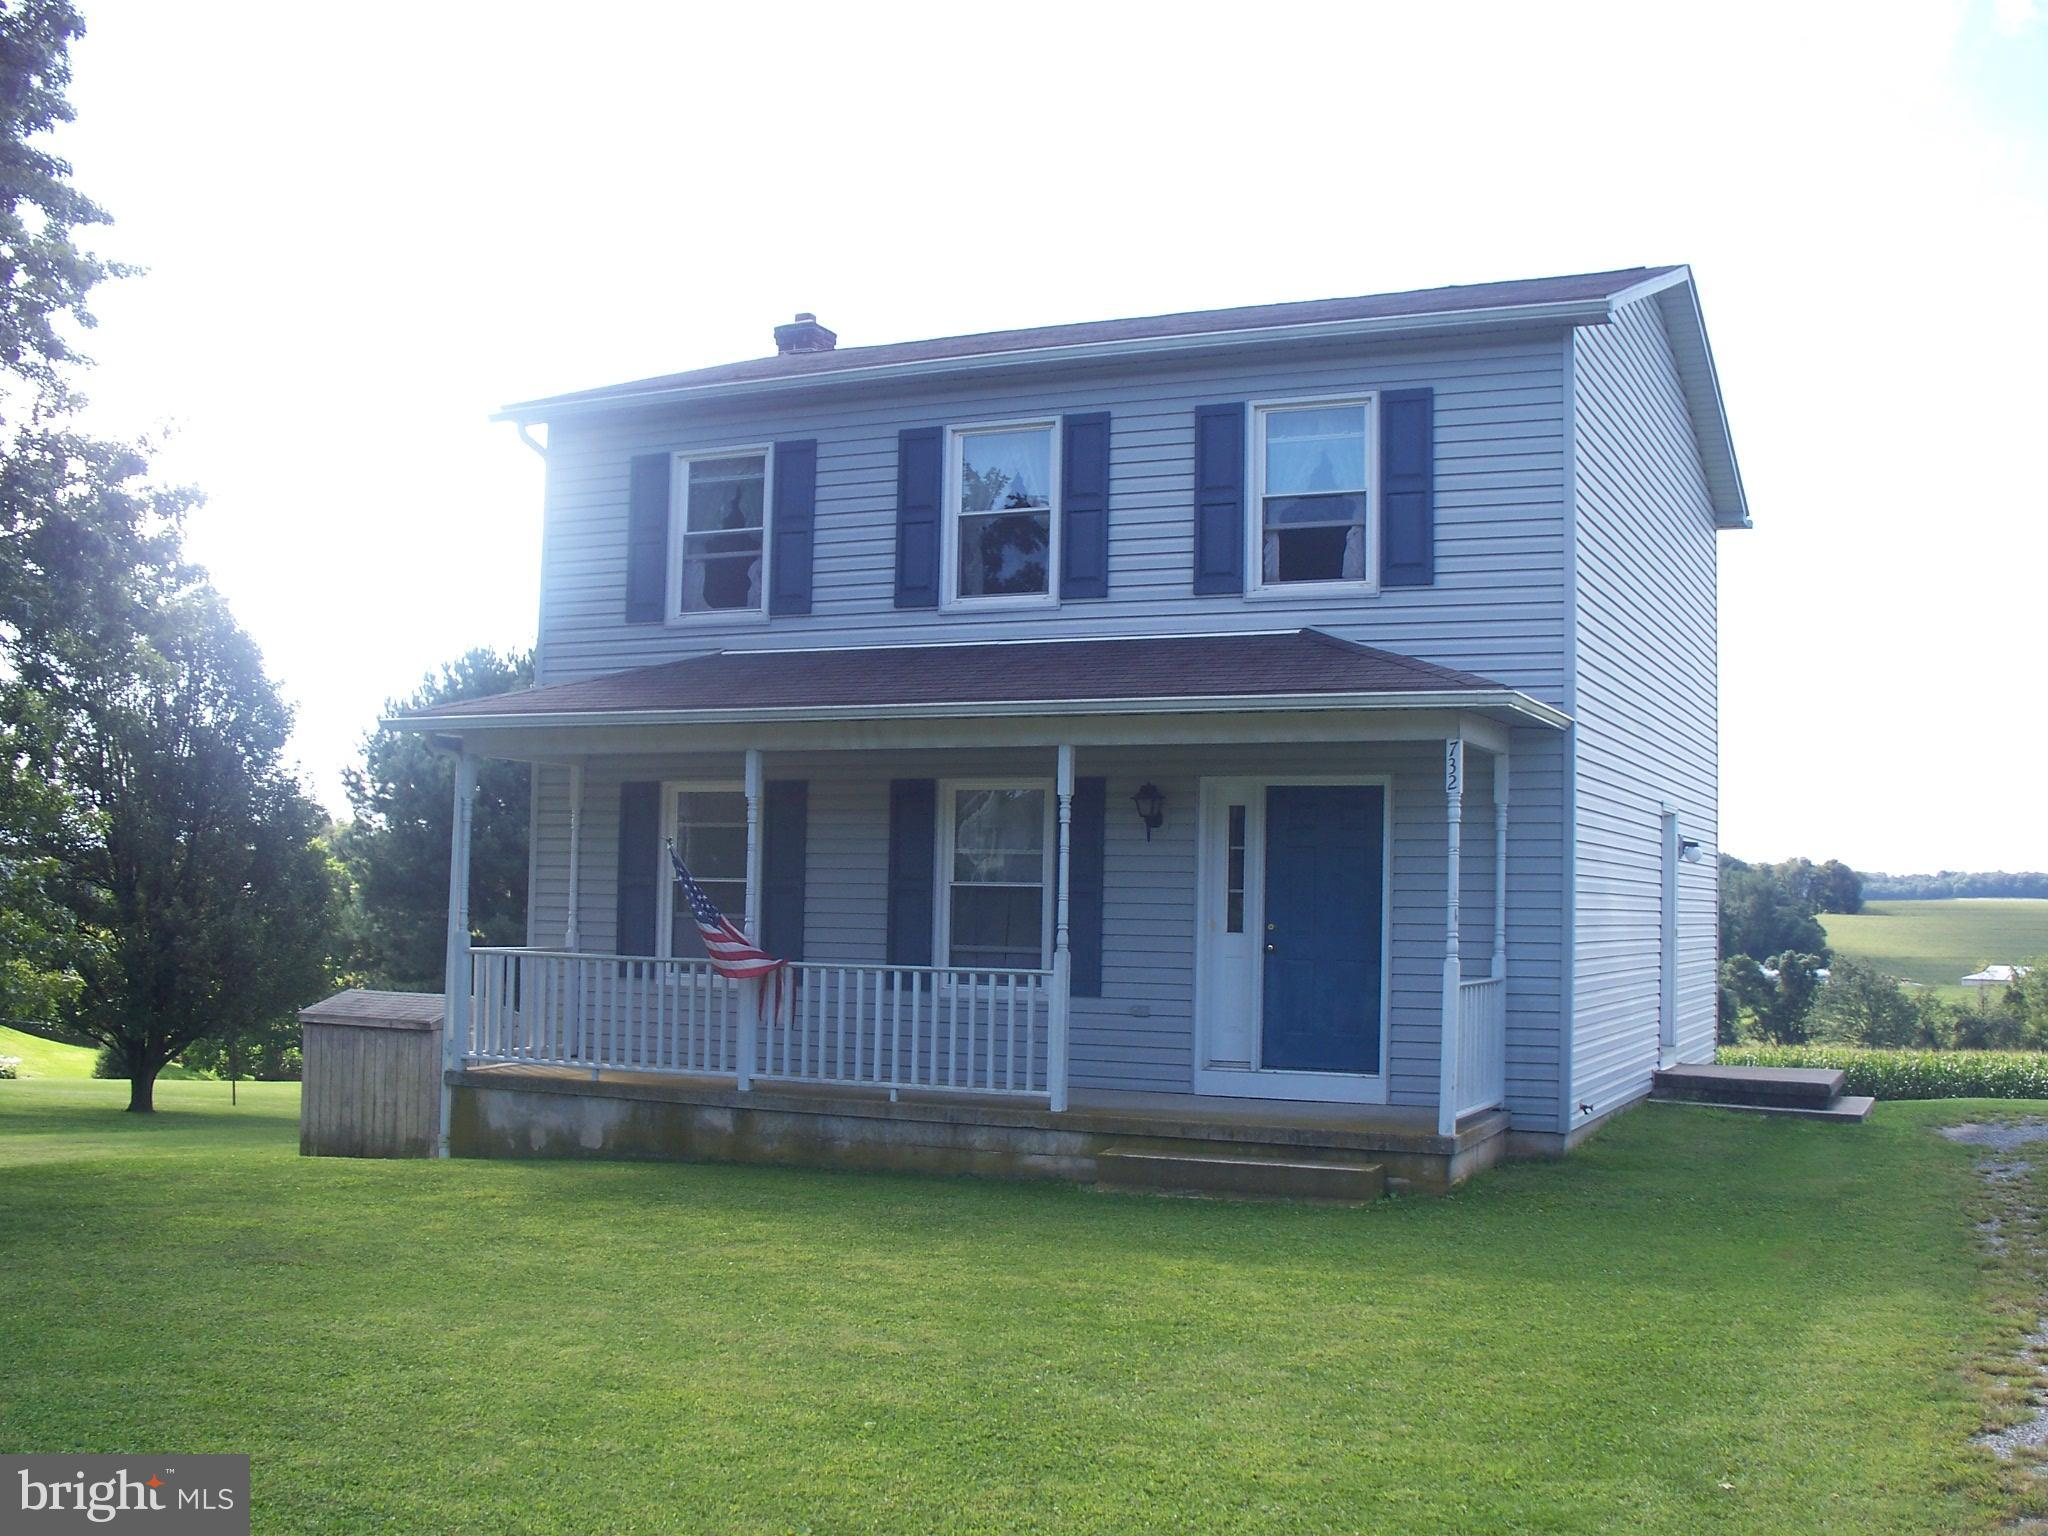 732 OLD COMMONS ROAD, WINDSOR, PA 17366